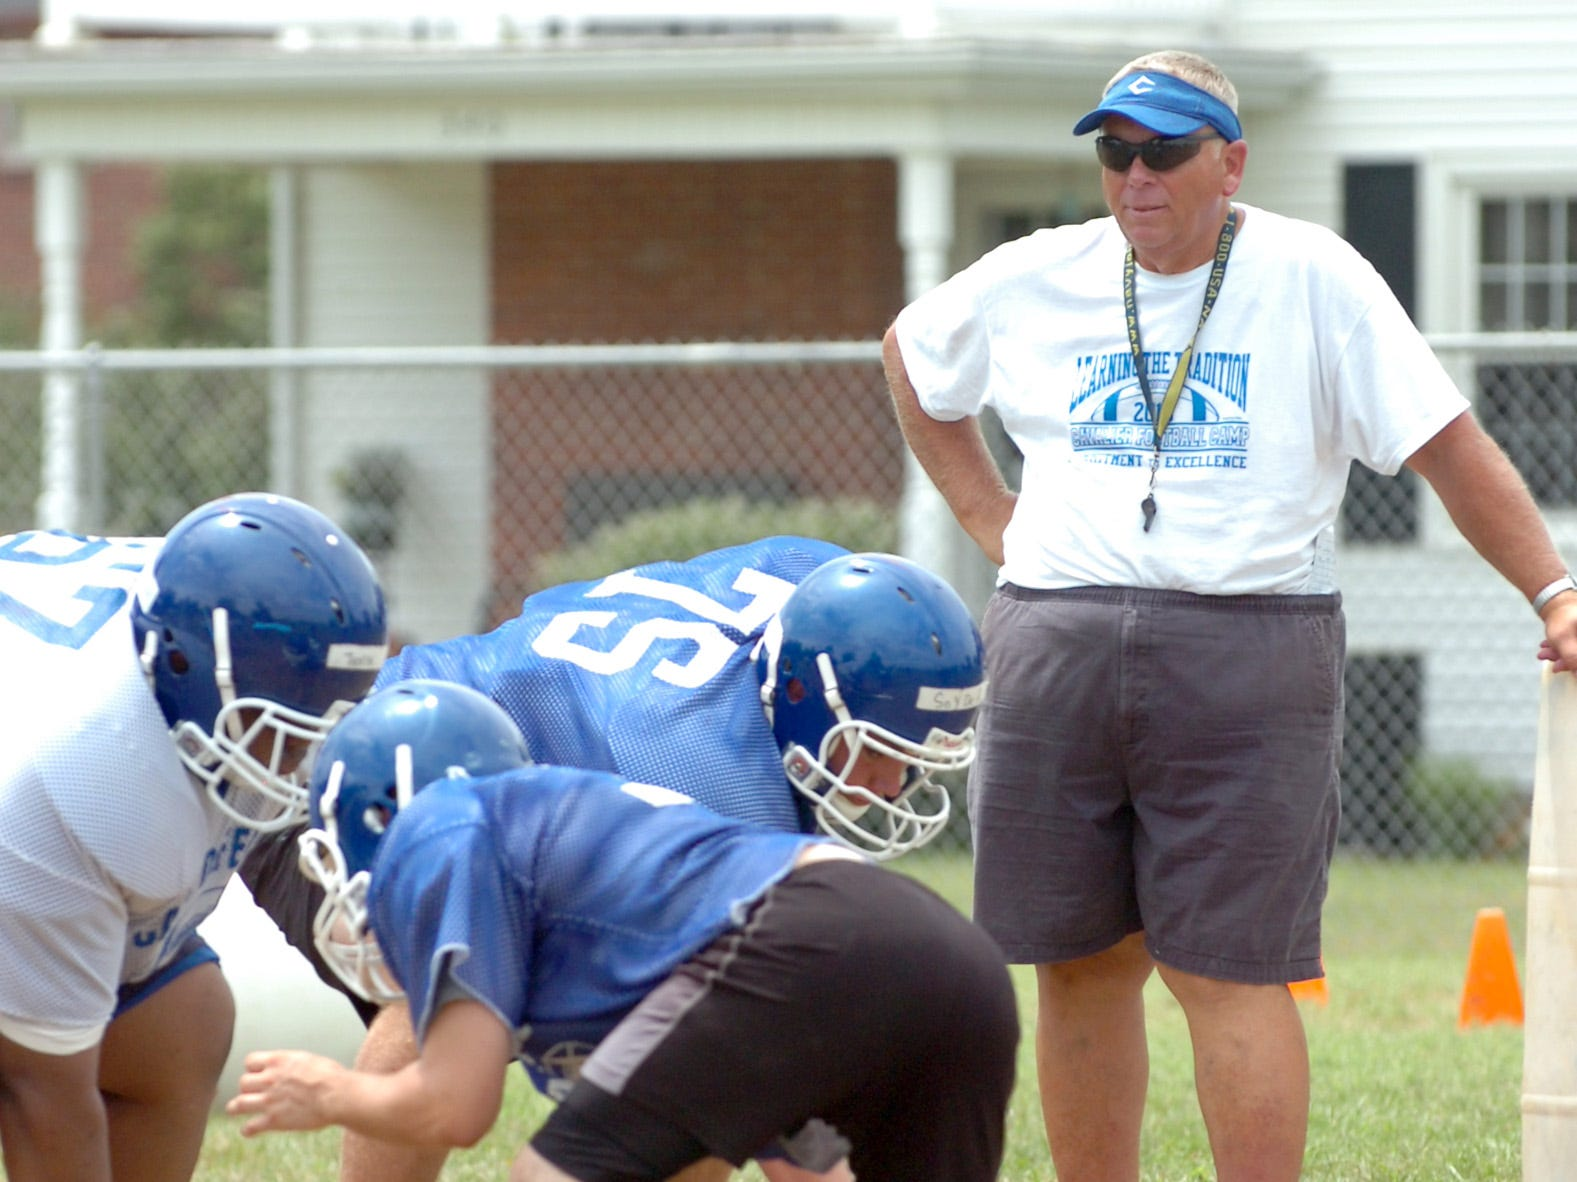 Chillicothe coach Ron Hinton oversees a Cavaliers practice in 2013.